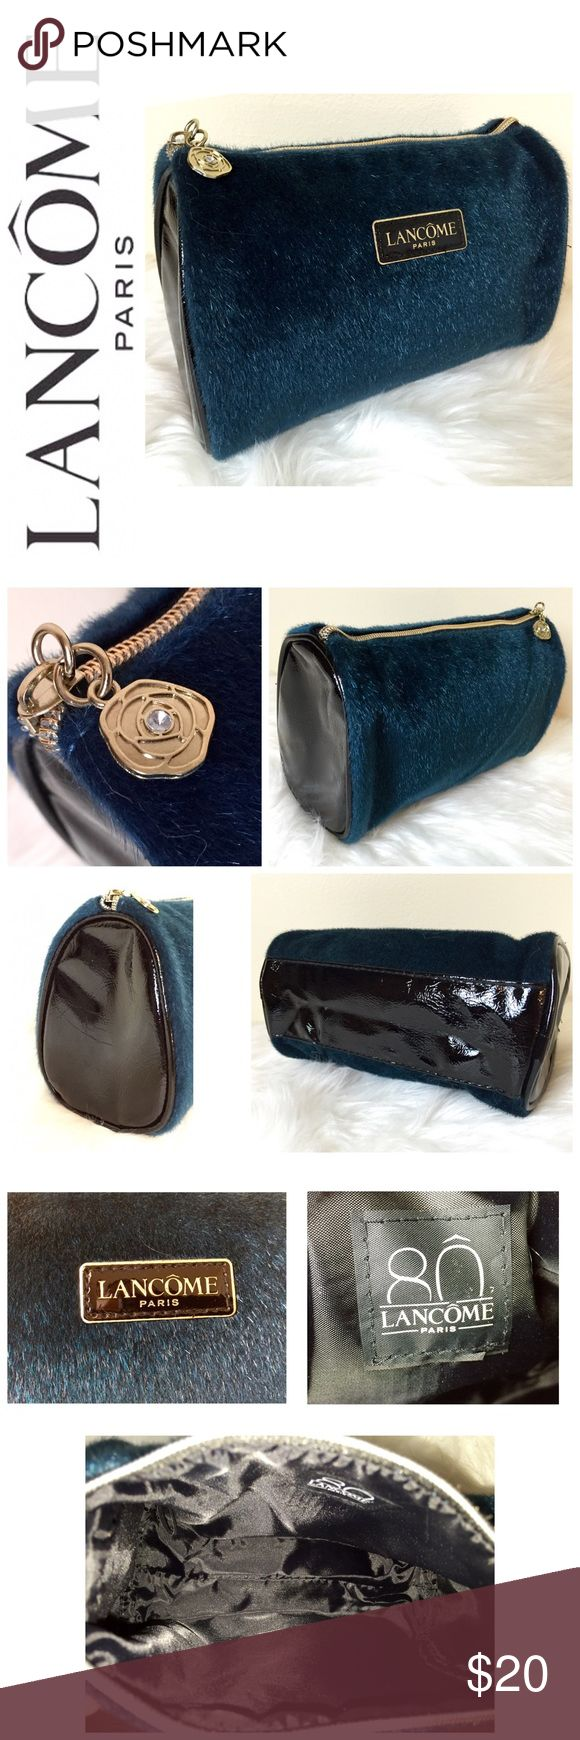 "Lancôme Paris Designer Cosmetic Bag Lancôme Paris Designer Cosmetic Bag, Faux Fur Style in Dark Teal with Gold Hardware, As well as Black Vinyl Material at both ends and Bottom, Zip Top Closure, Approx. Size is 7""x 4 1/2"" x 3"", NWOT! Lancome Bags Cosmetic Bags & Cases"